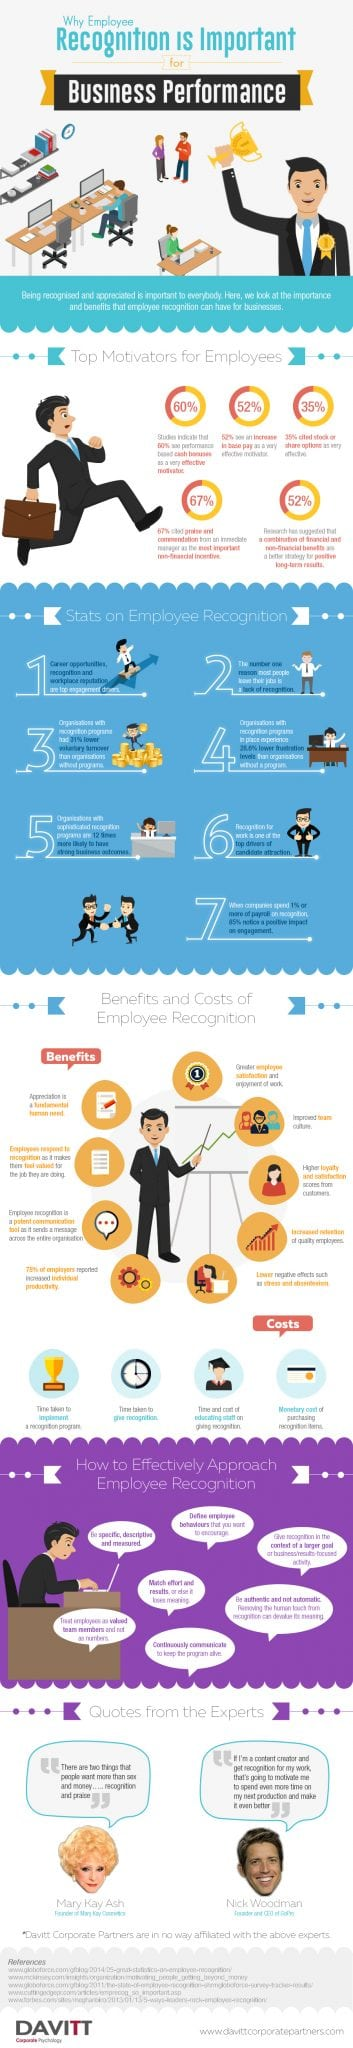 why-employee-recognition-is-important-for-business-performance-infographic